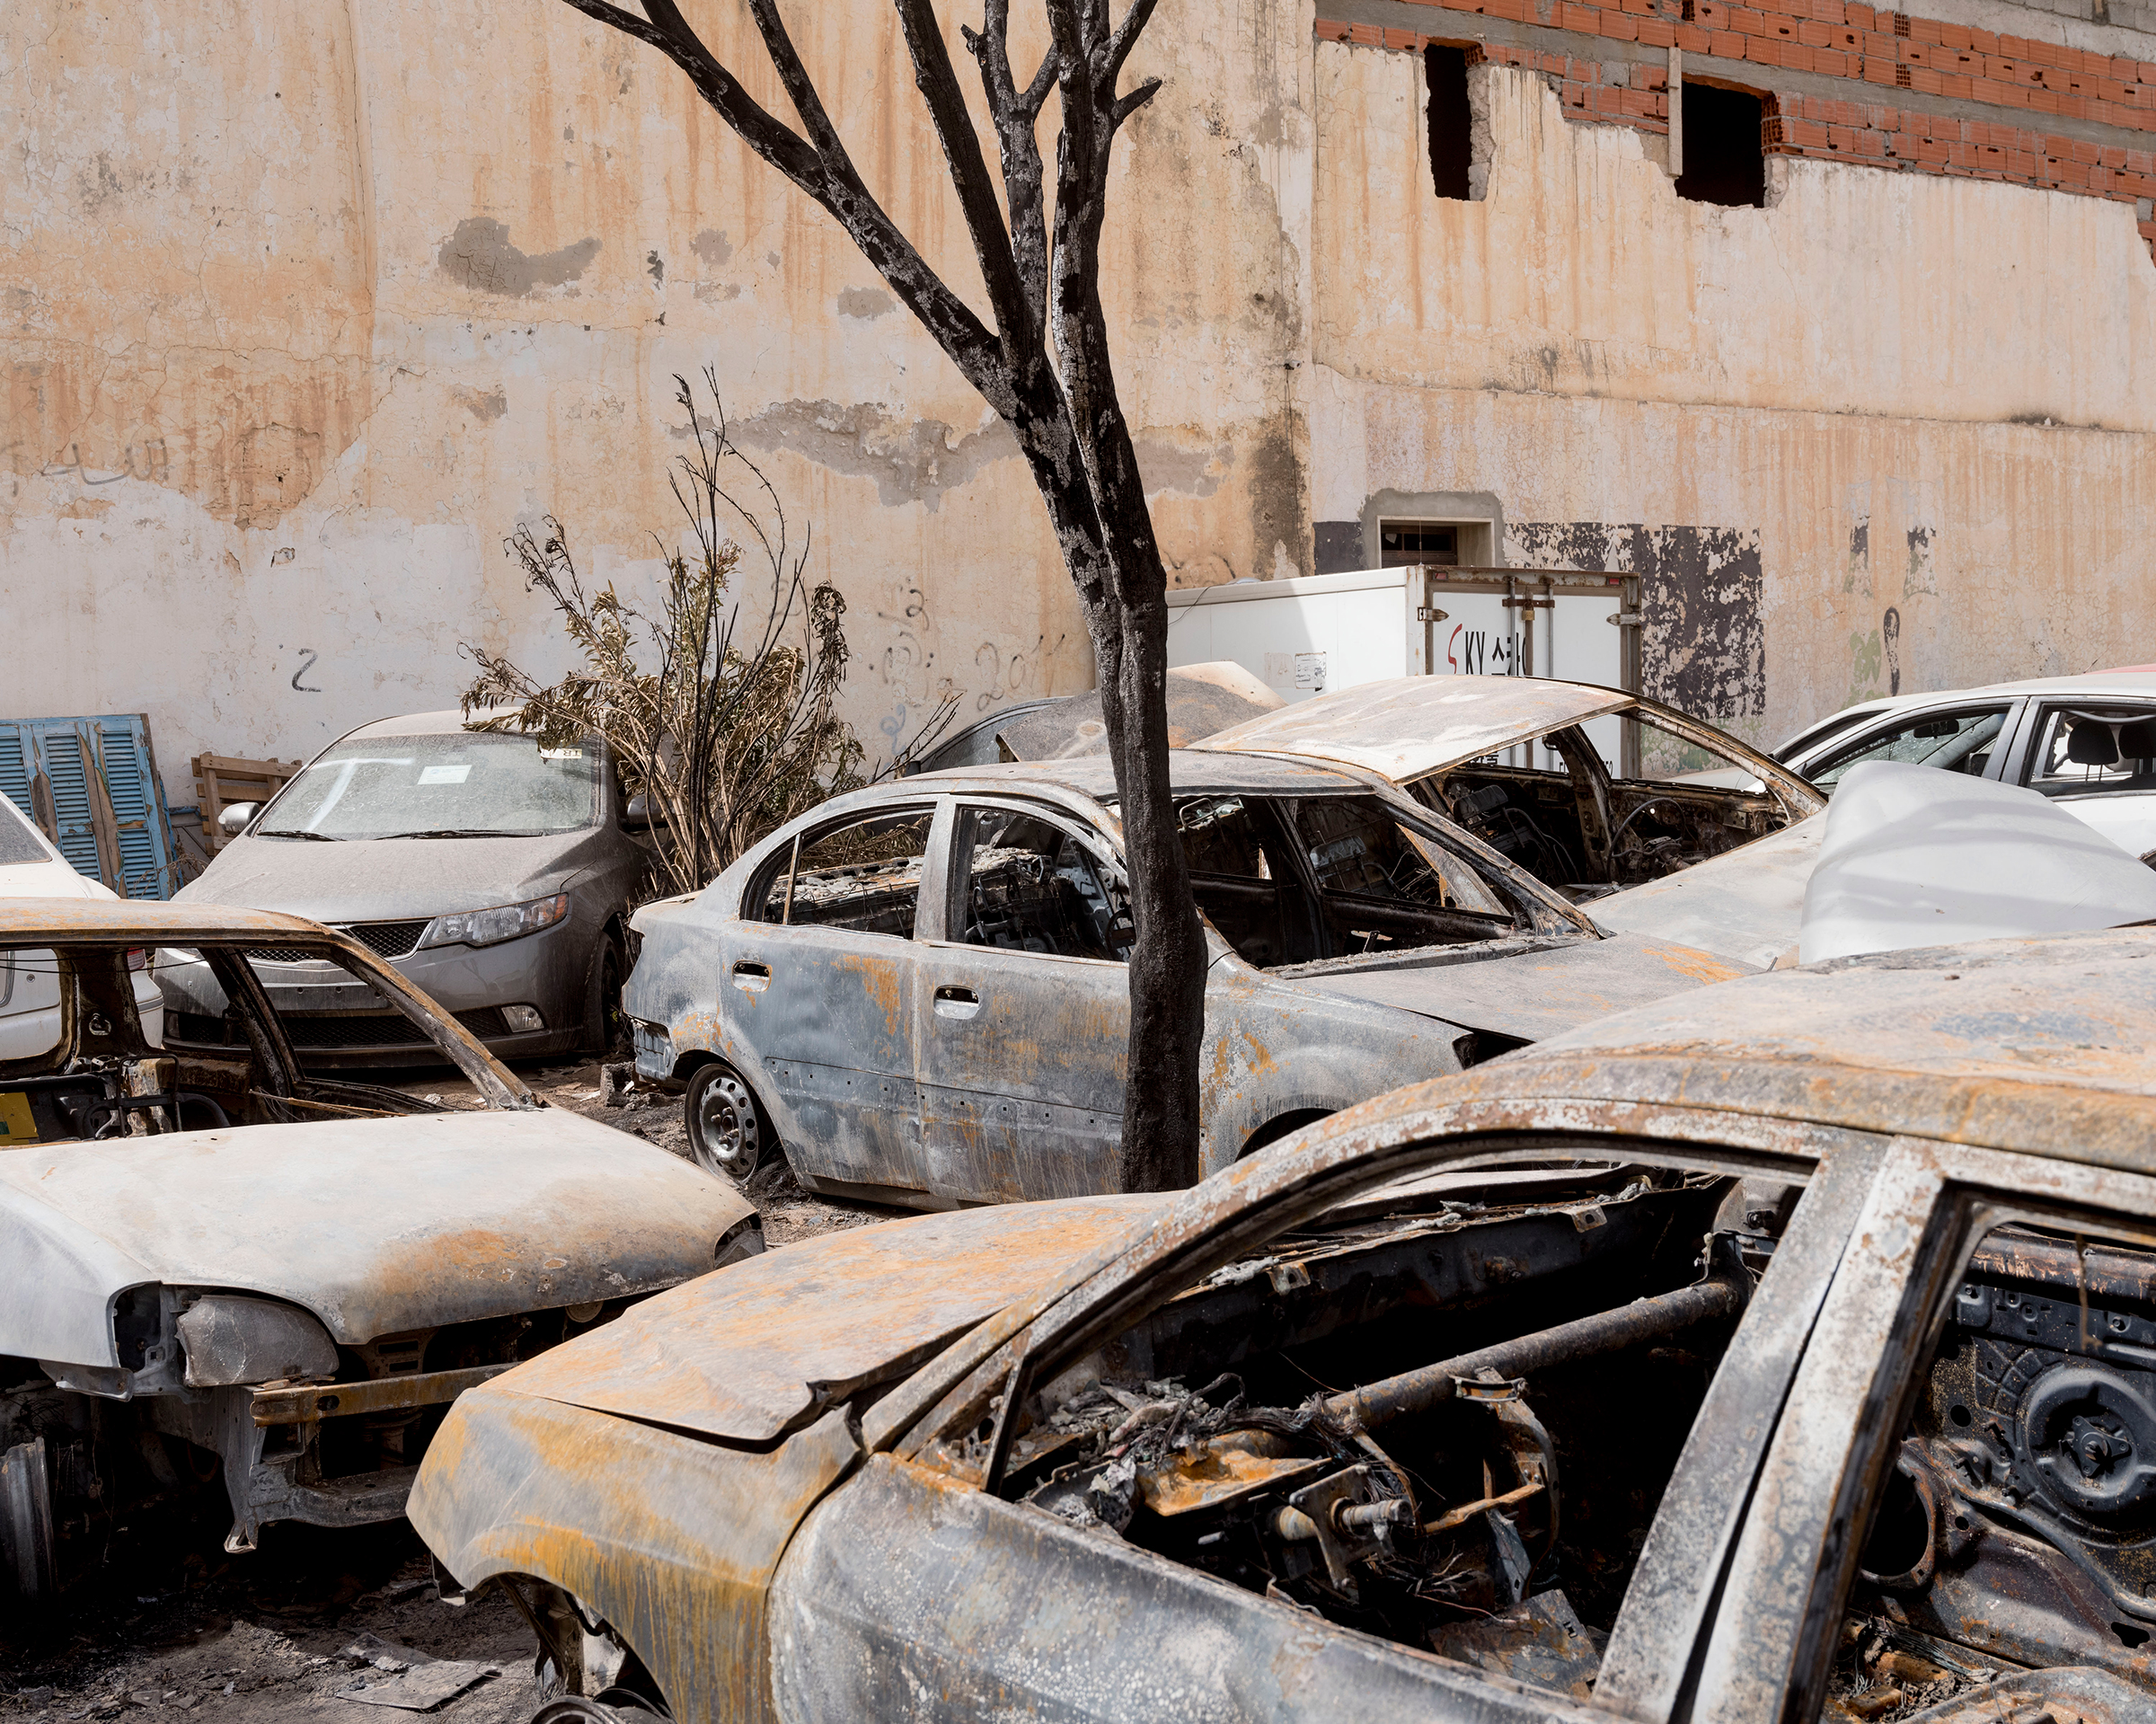 A group of vehicles, in a civilian area far from the fighting, that were burned after a GRAD rocket was launched by forces loyal to Haftar in Tripoli in April.